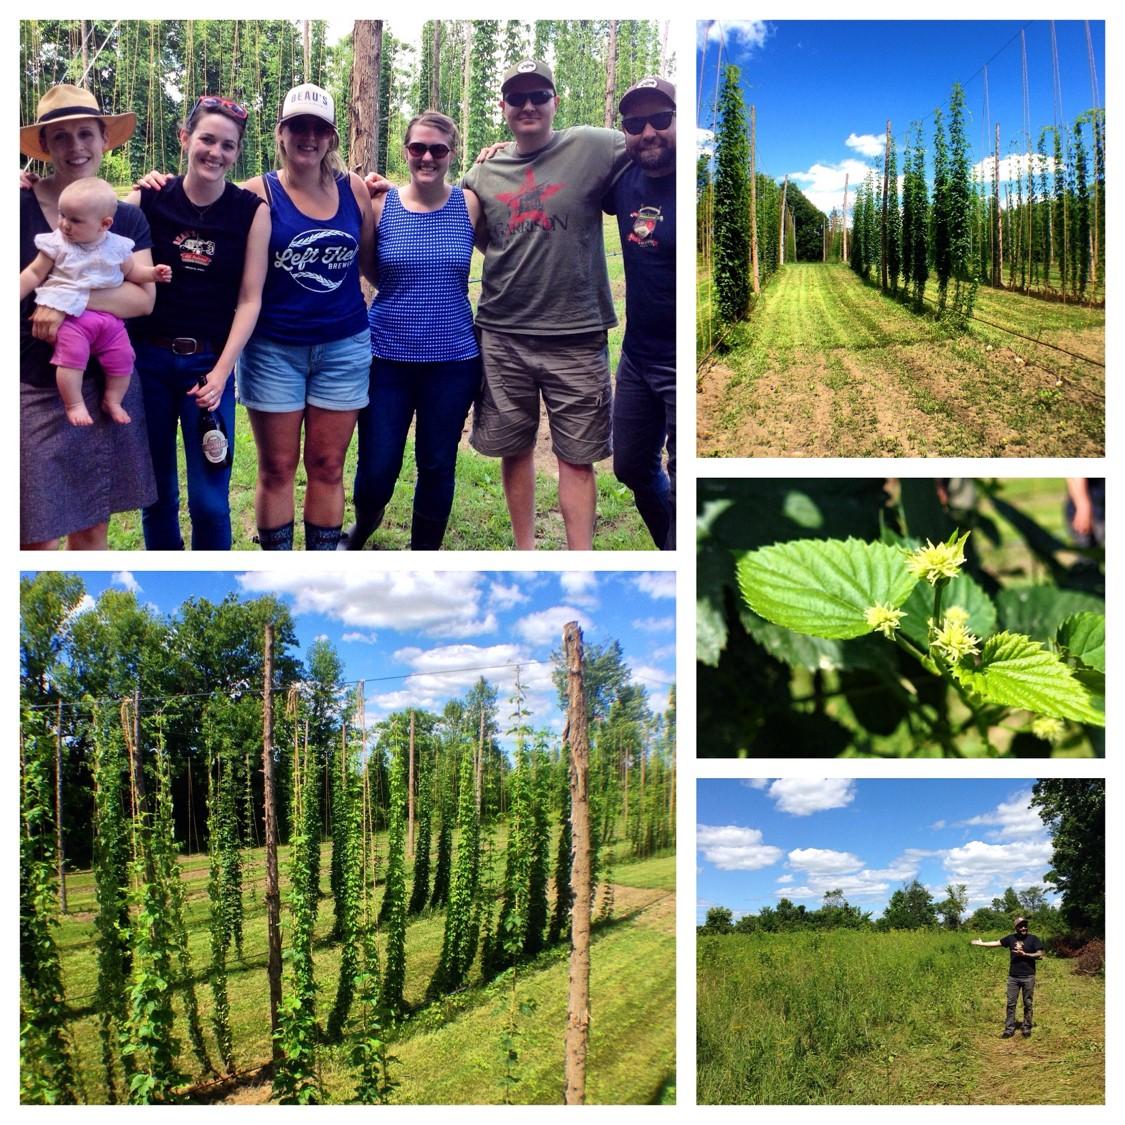 A photo collage of the hop farm at Old 4th including images of the vines, close up of the hop cones, and a group shot of six folks from Beau's visiting the farm.